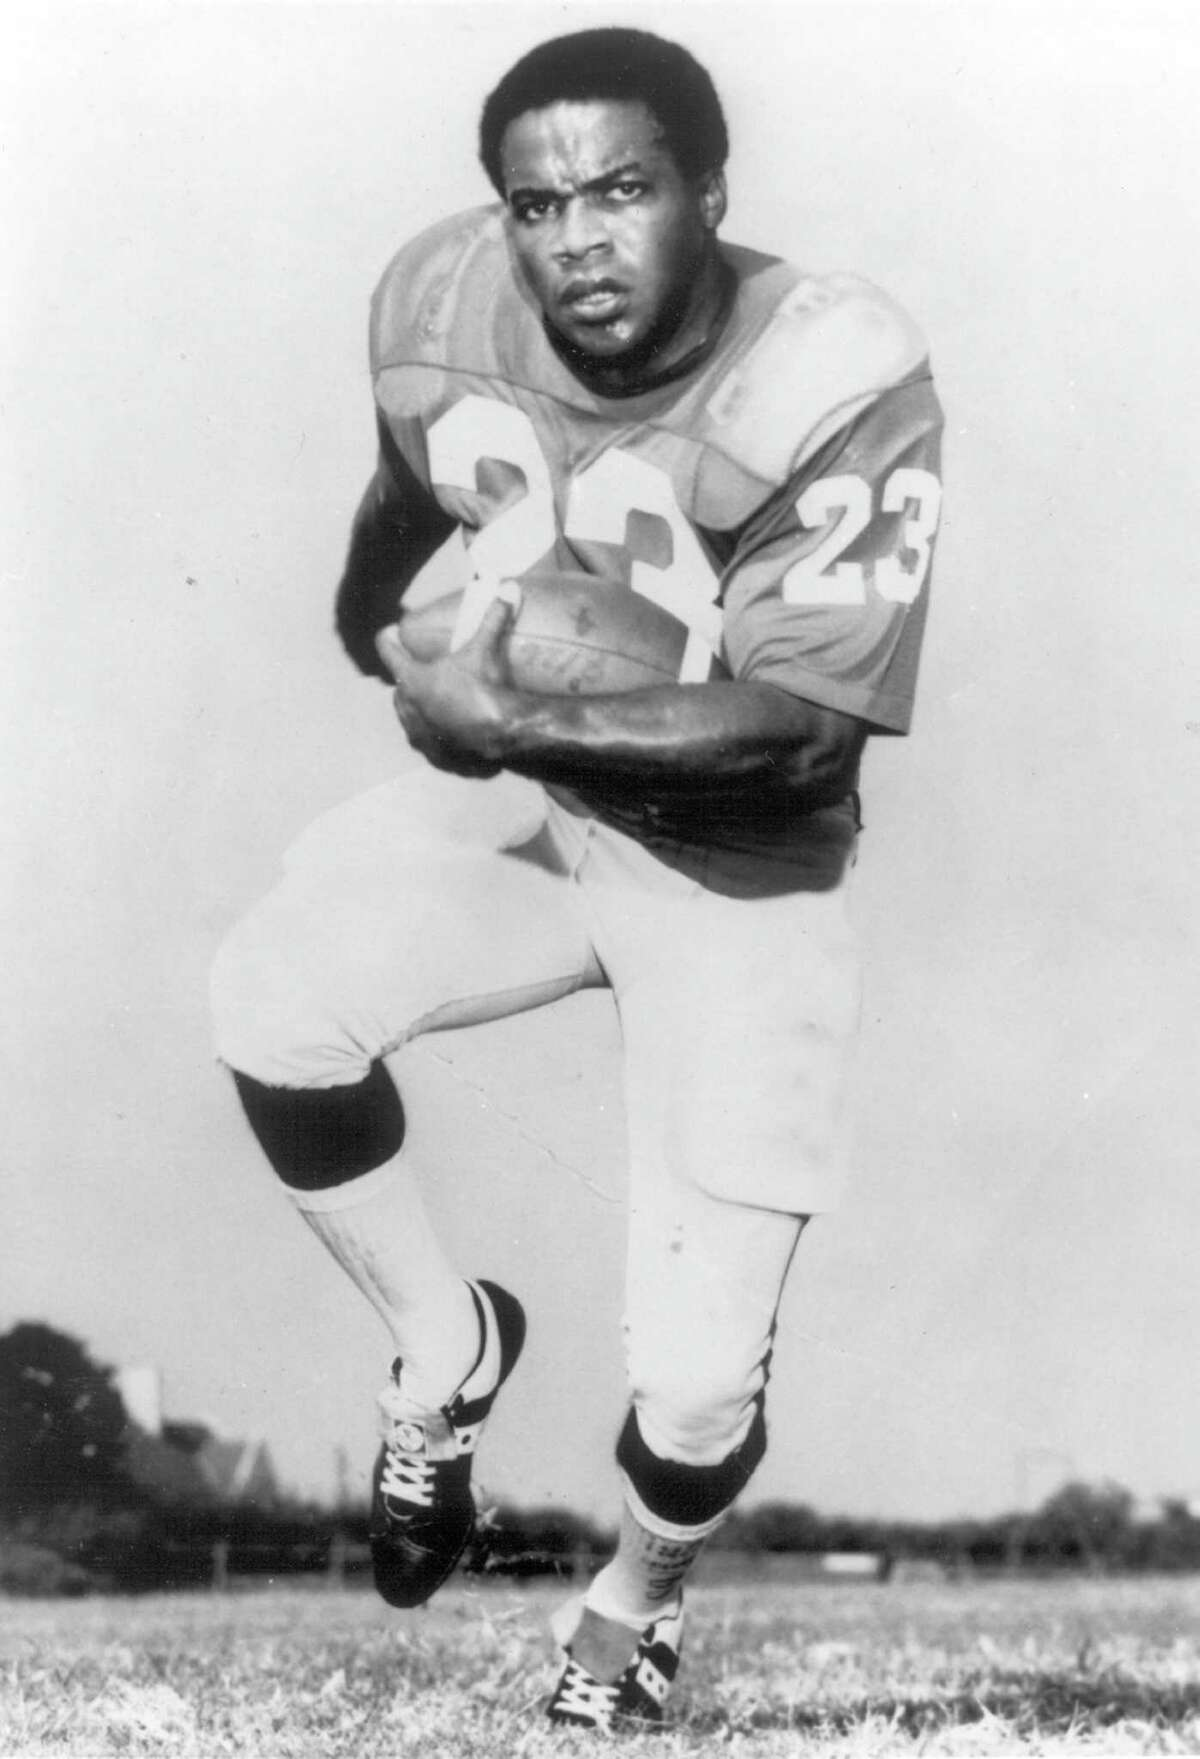 Jerry LeVias (#23) of the Southern Methodist Mustangs poses before a circa 1960s game. LeVias played for Southern Methodist from 1965-67.